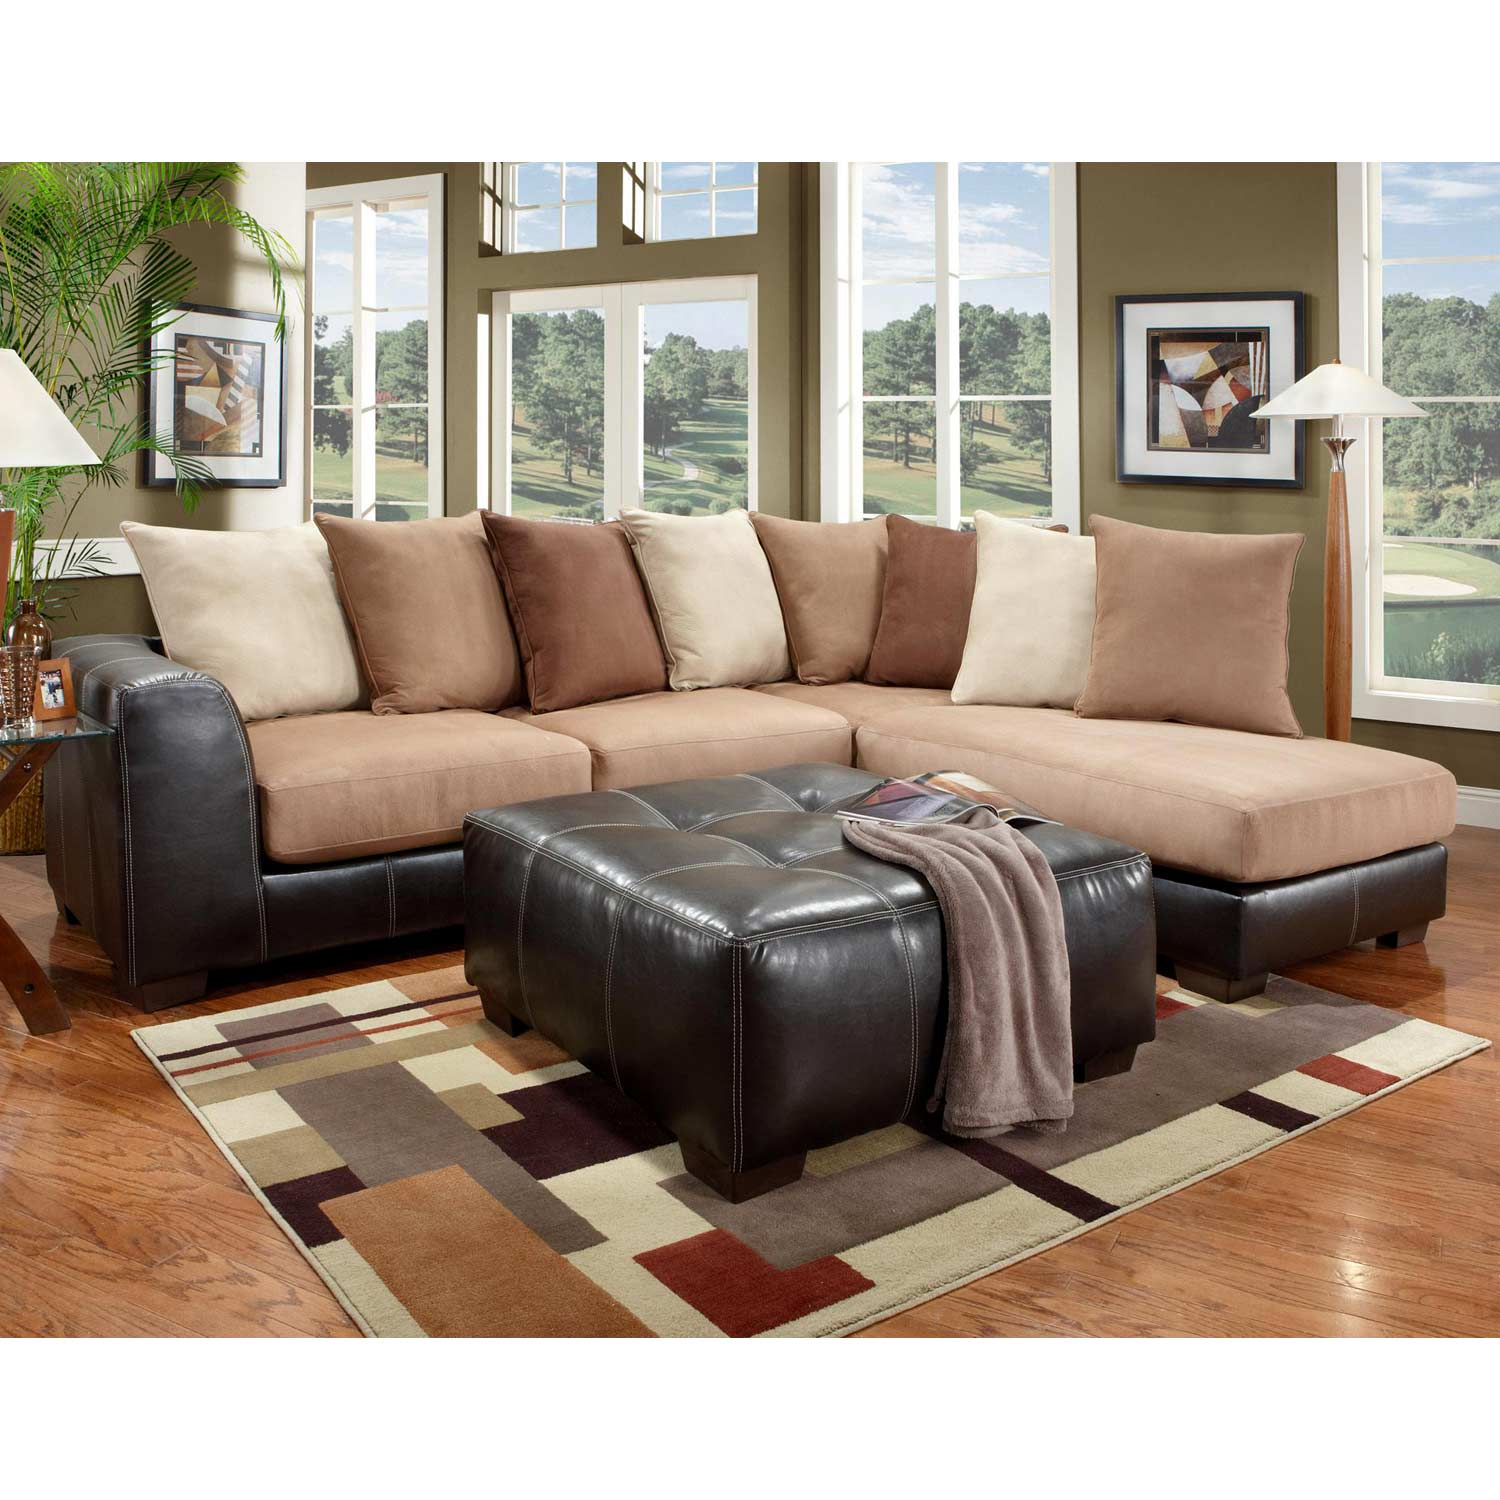 Landon Sectional Sofa & Chaise - Laredo Mocha